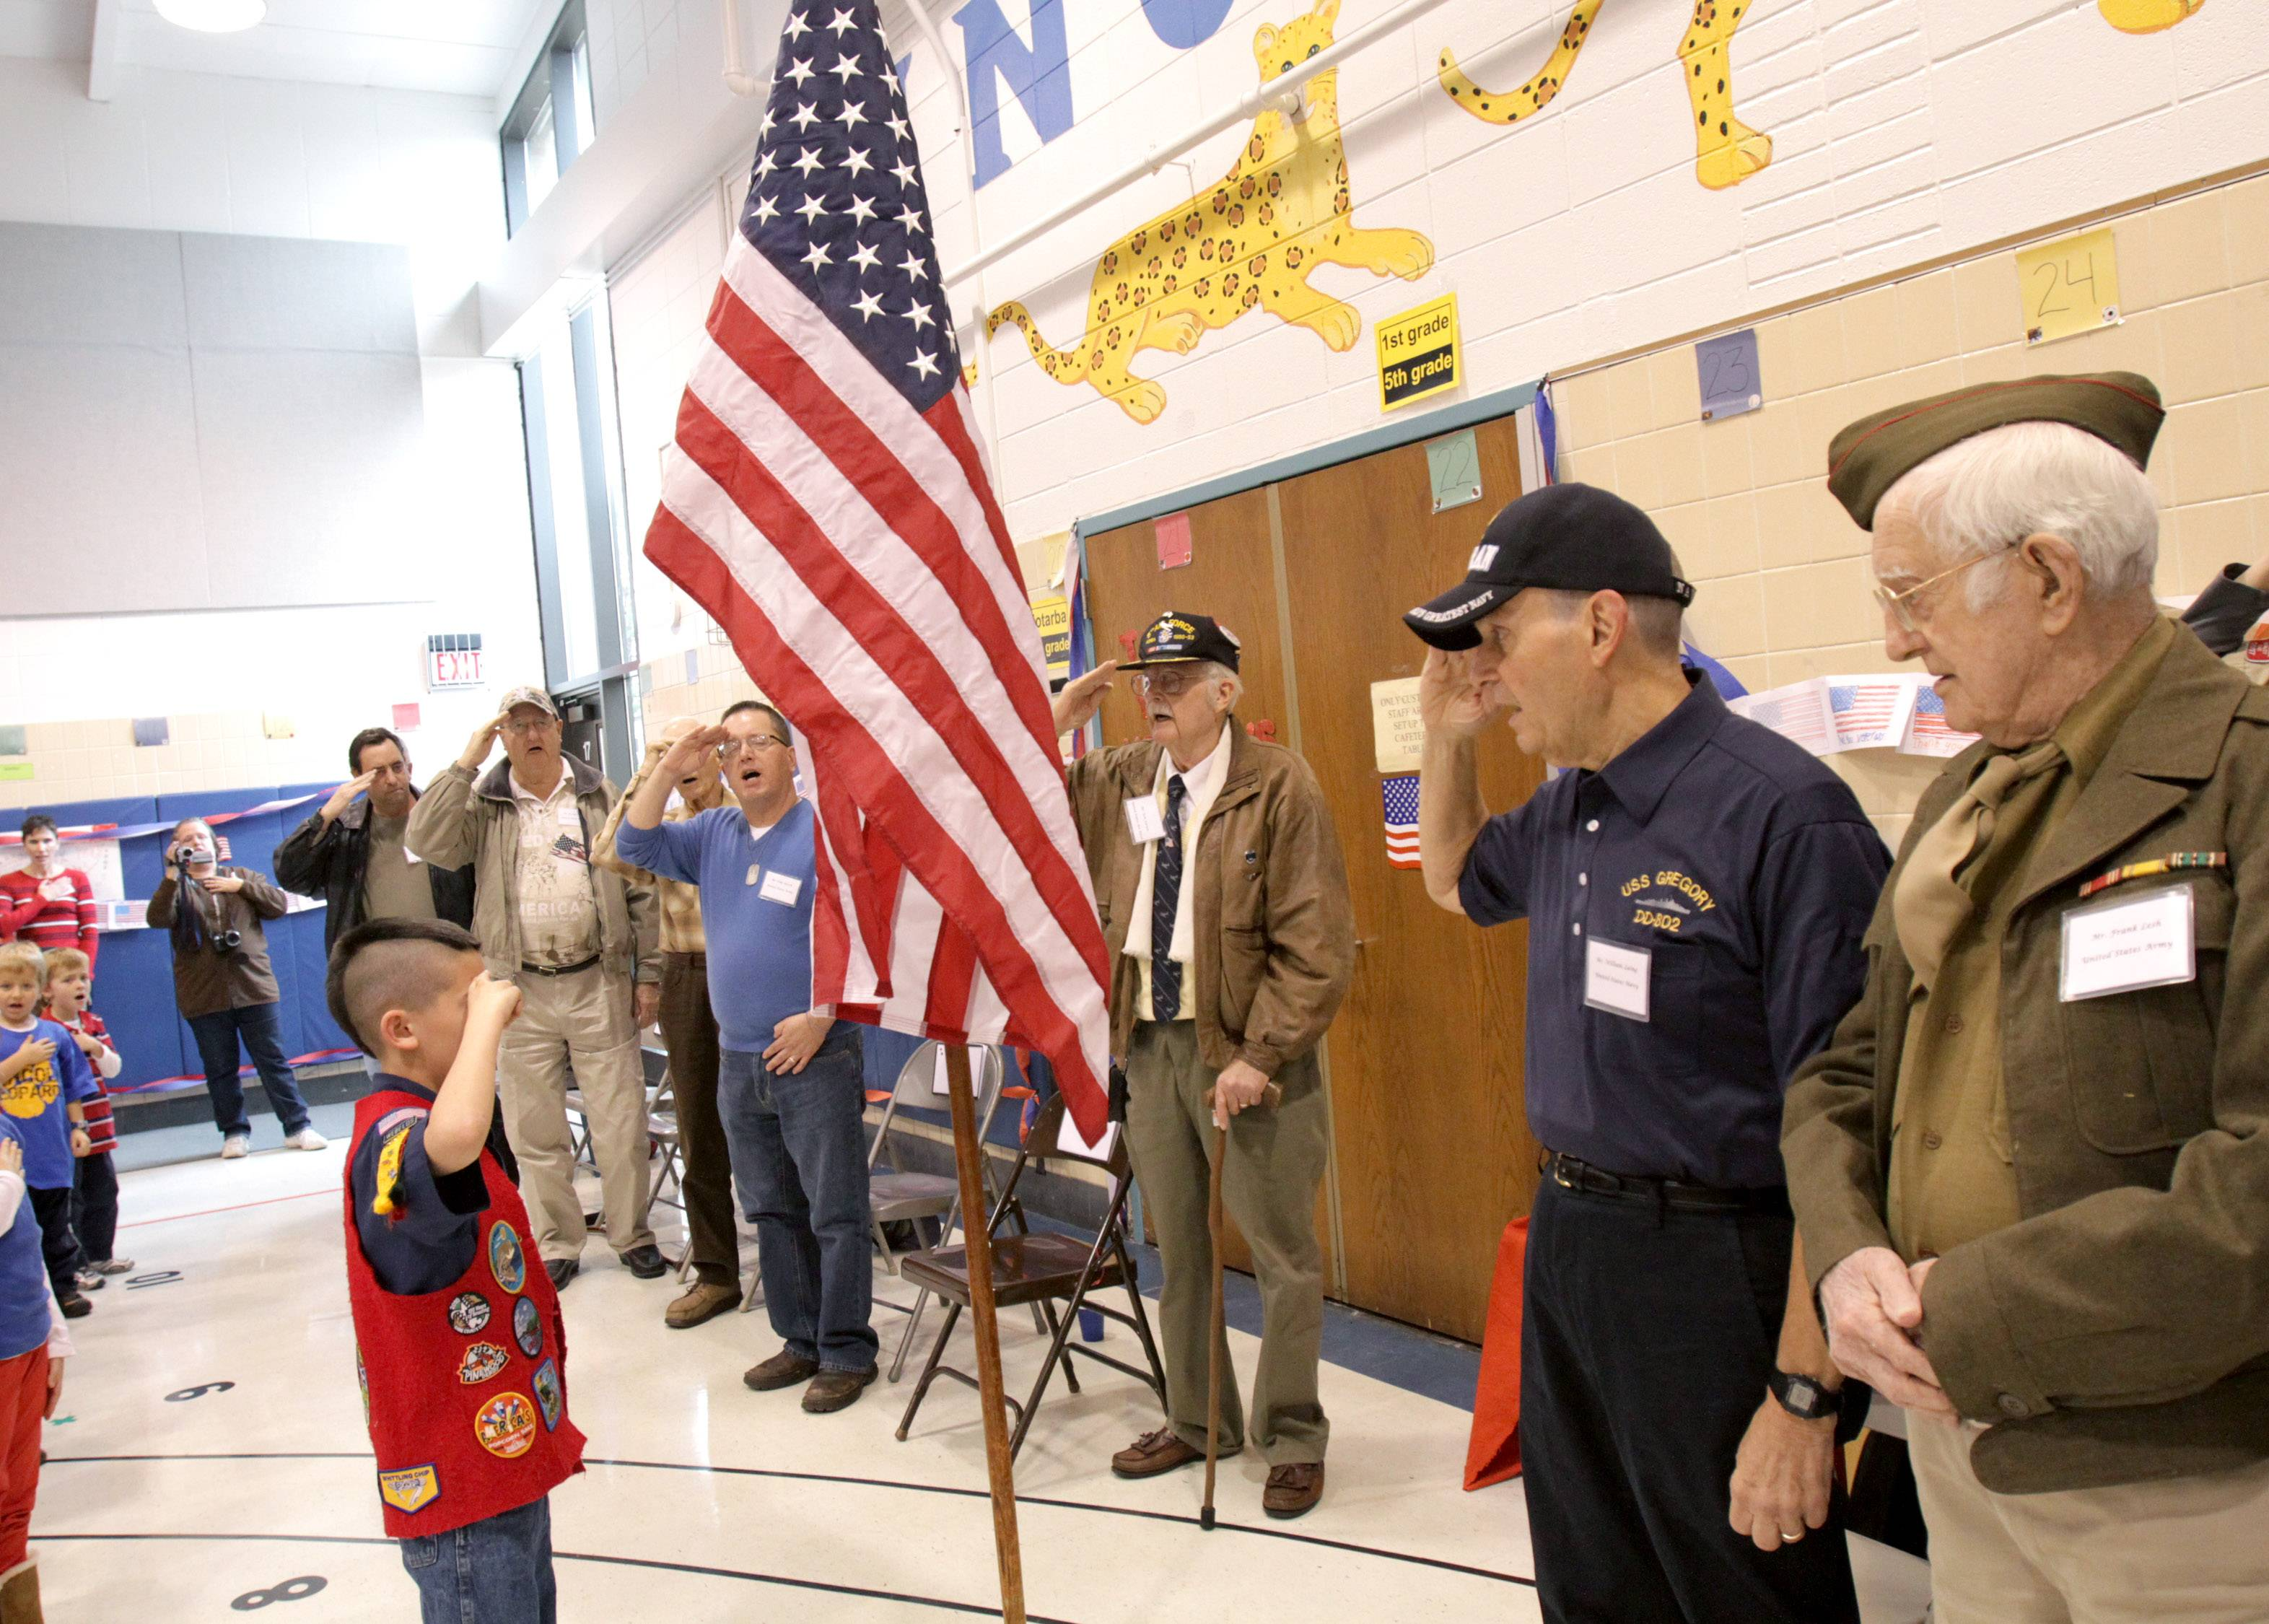 Schools all over DuPage County will teach students about military service this week by welcoming veterans to assemblies.